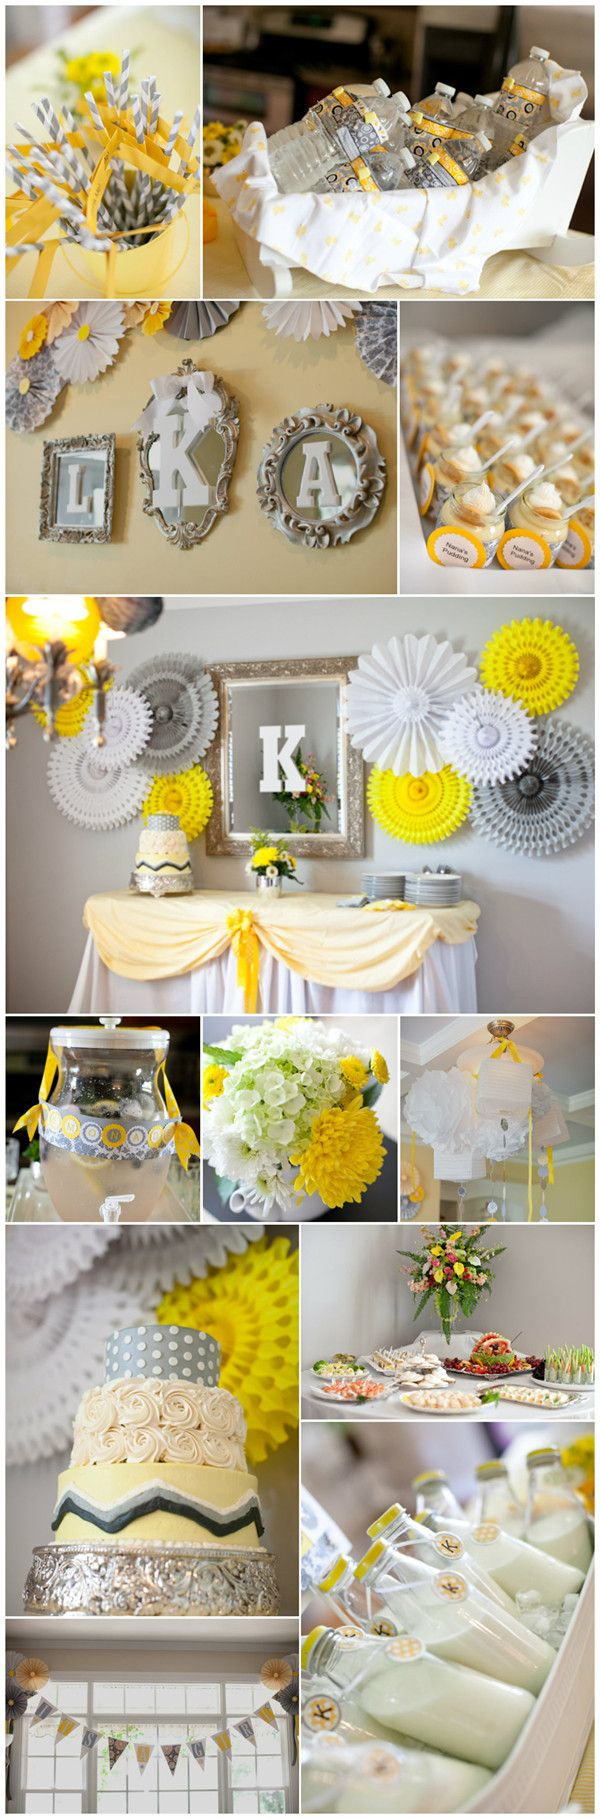 baby shower themes baby shower parties shower party gray yellow mint